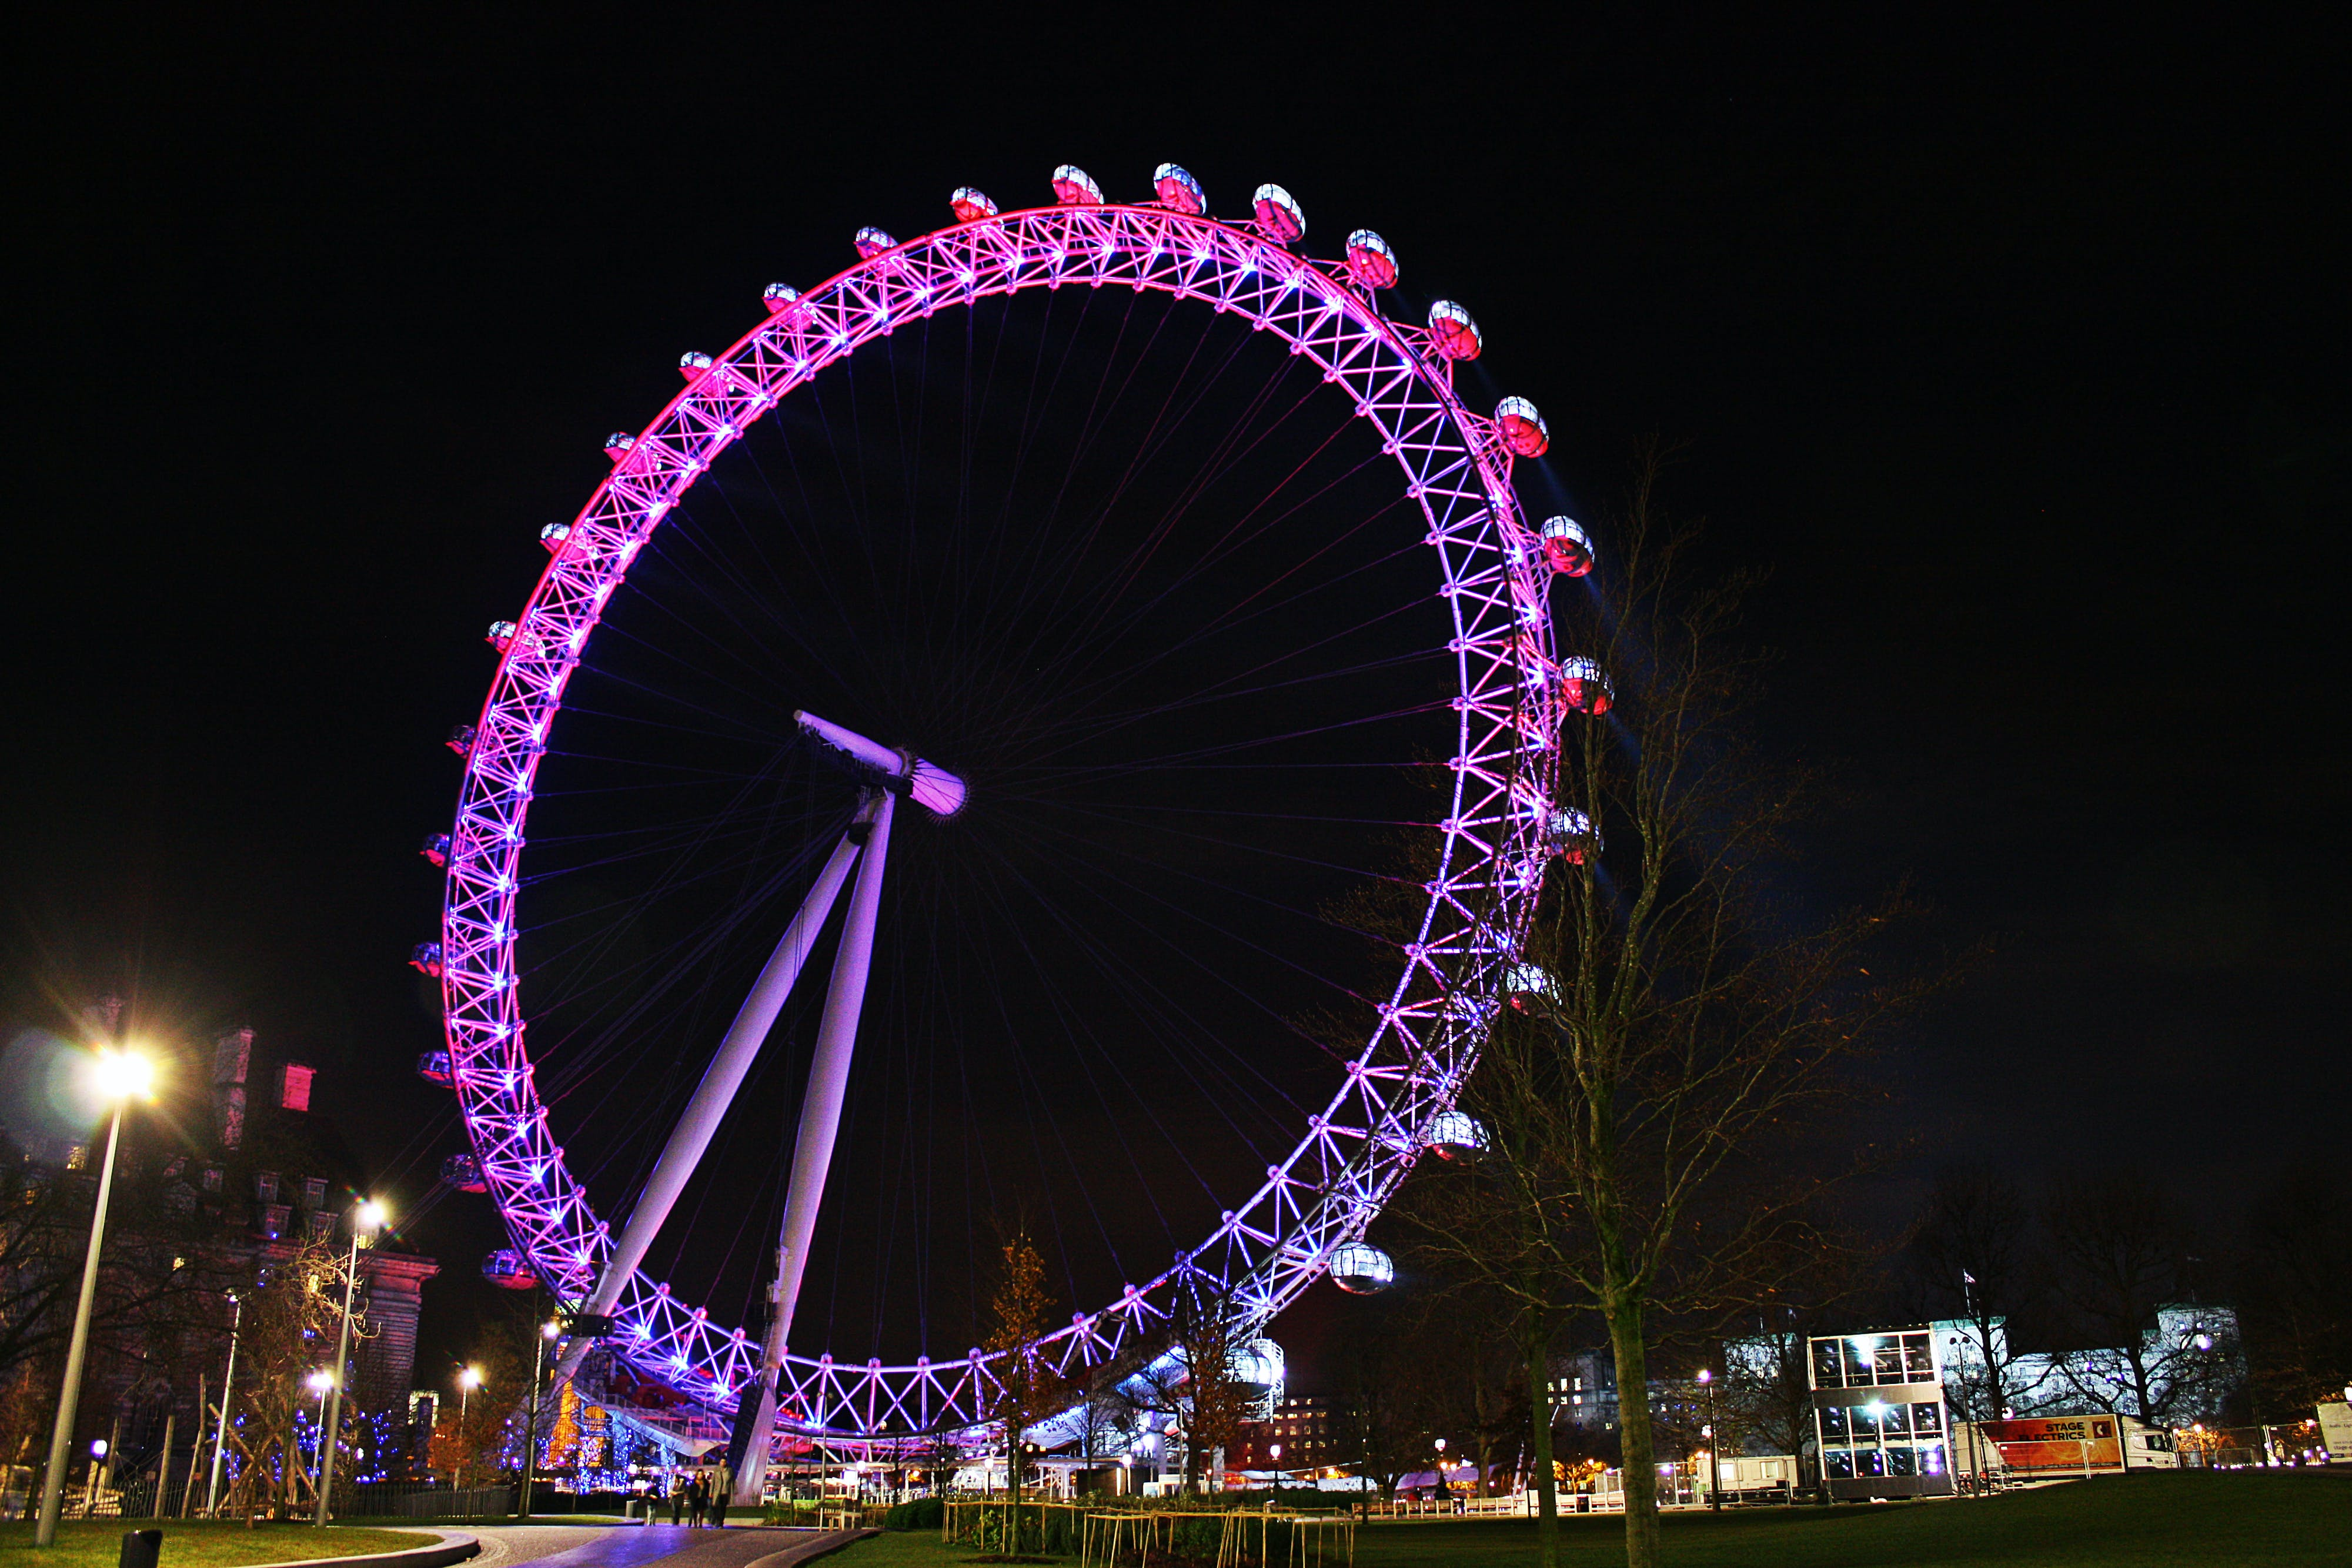 Free stock photo of giant ferris wheel, London UK, Millennium Wheel, The London Eye at night